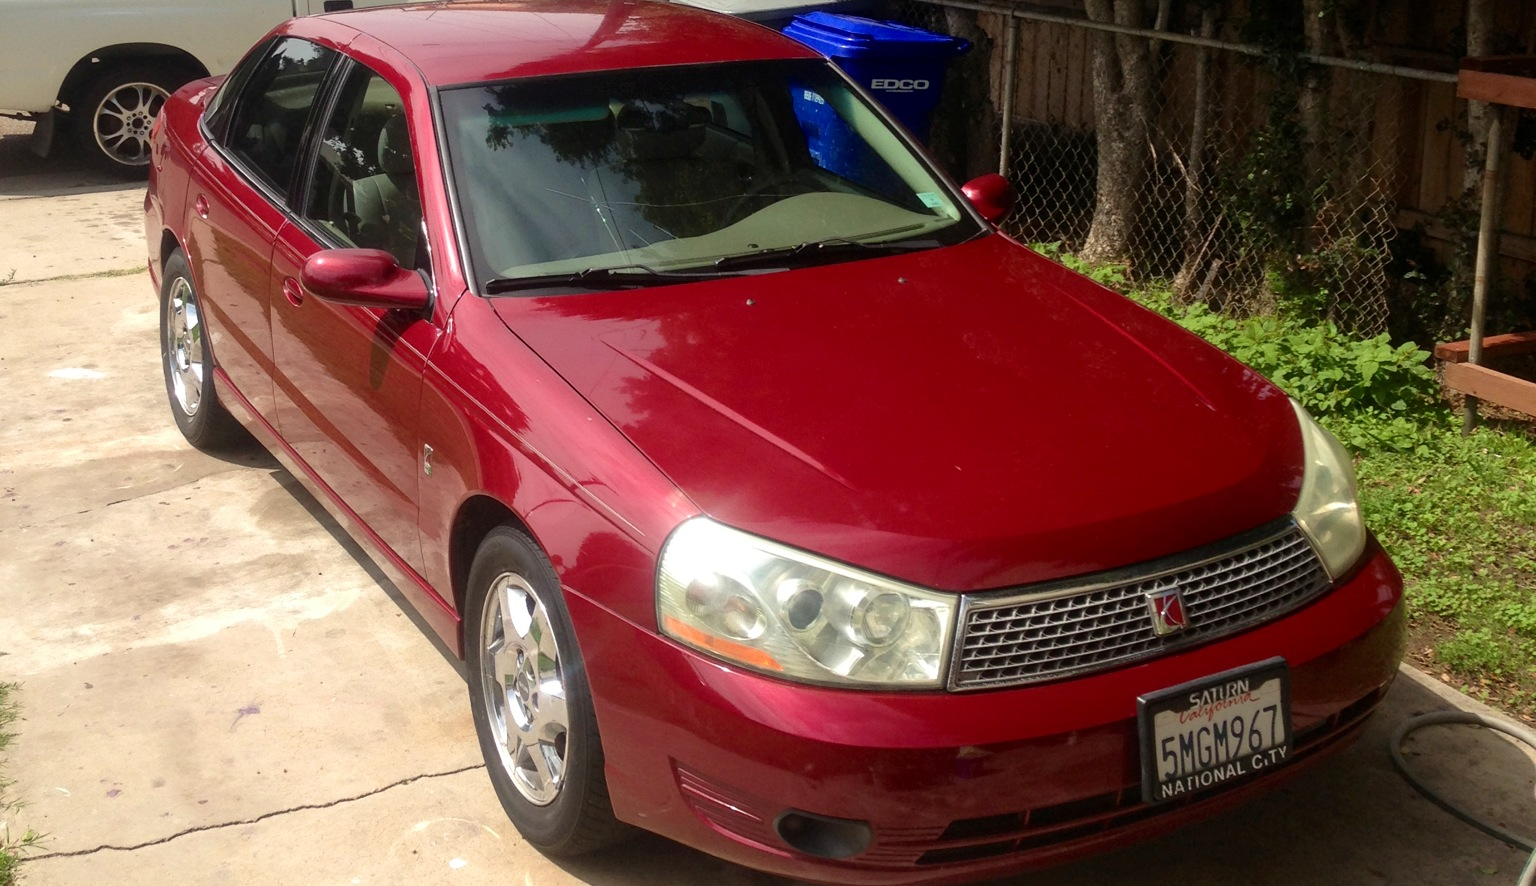 2004 Saturn L300 - Overview